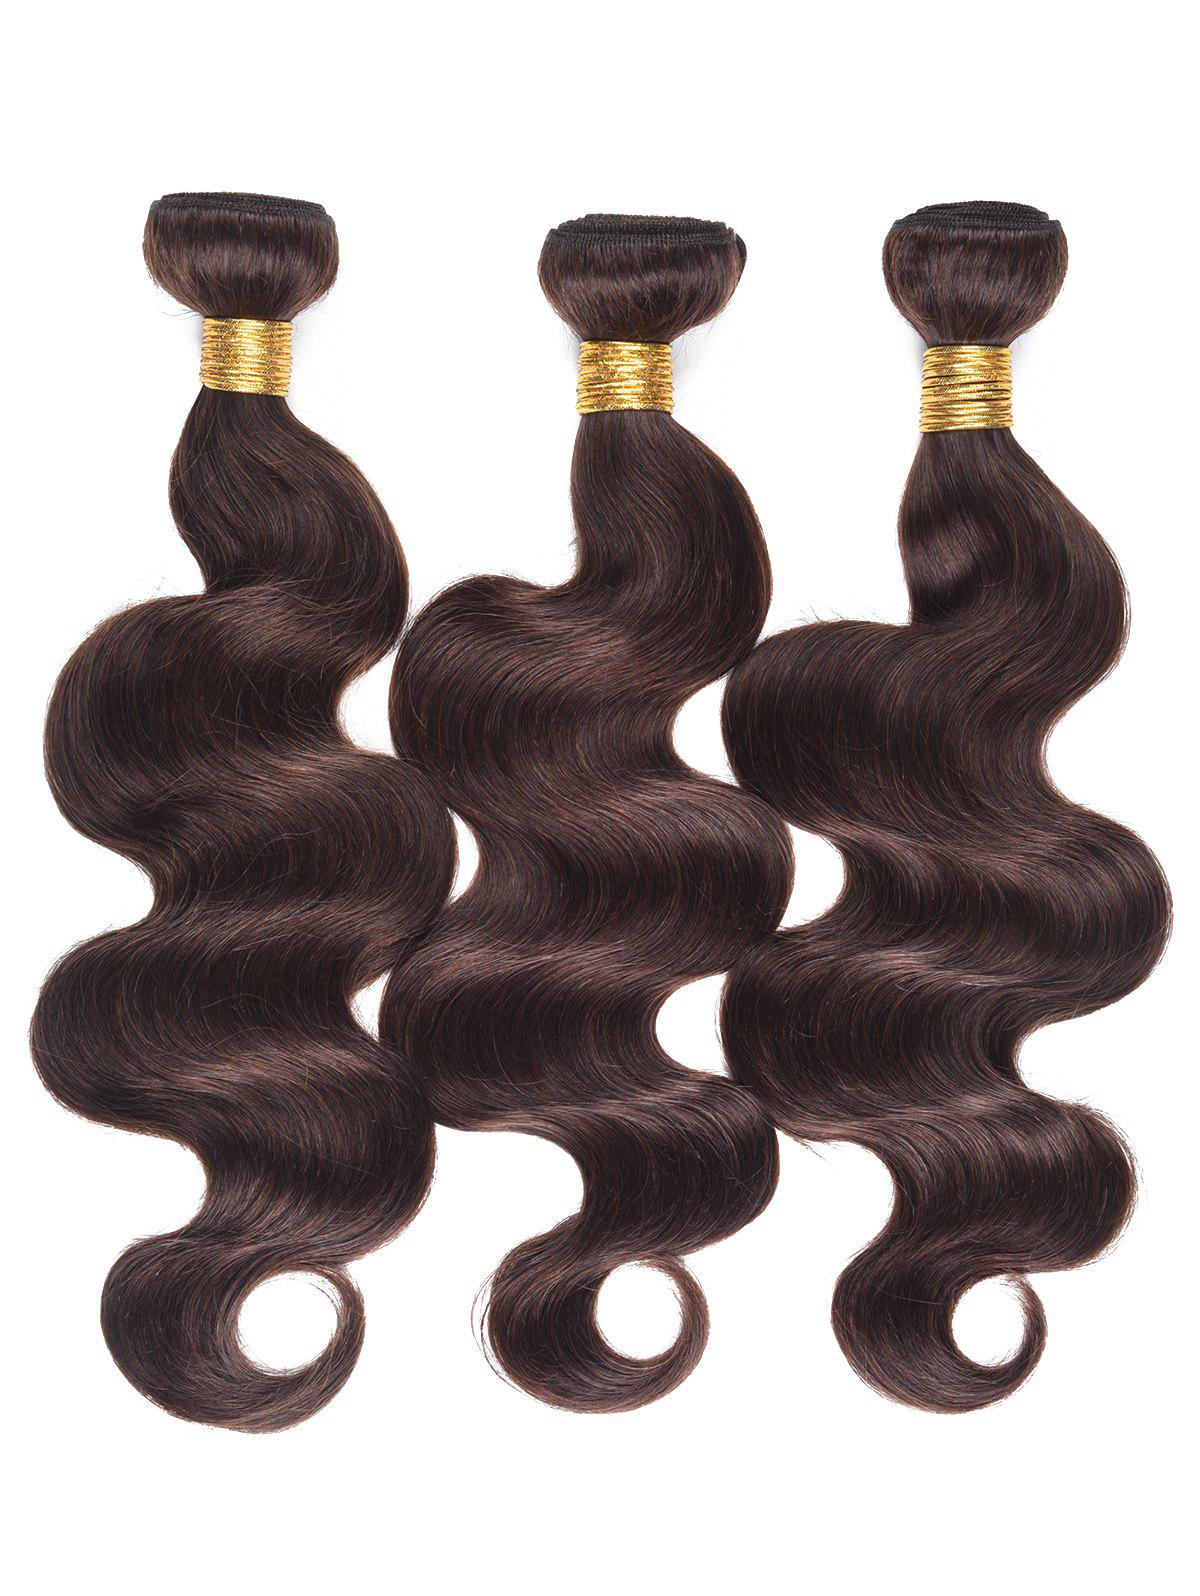 Store Dyed Permed Human Hair Body Wave Indian Hair Weaves